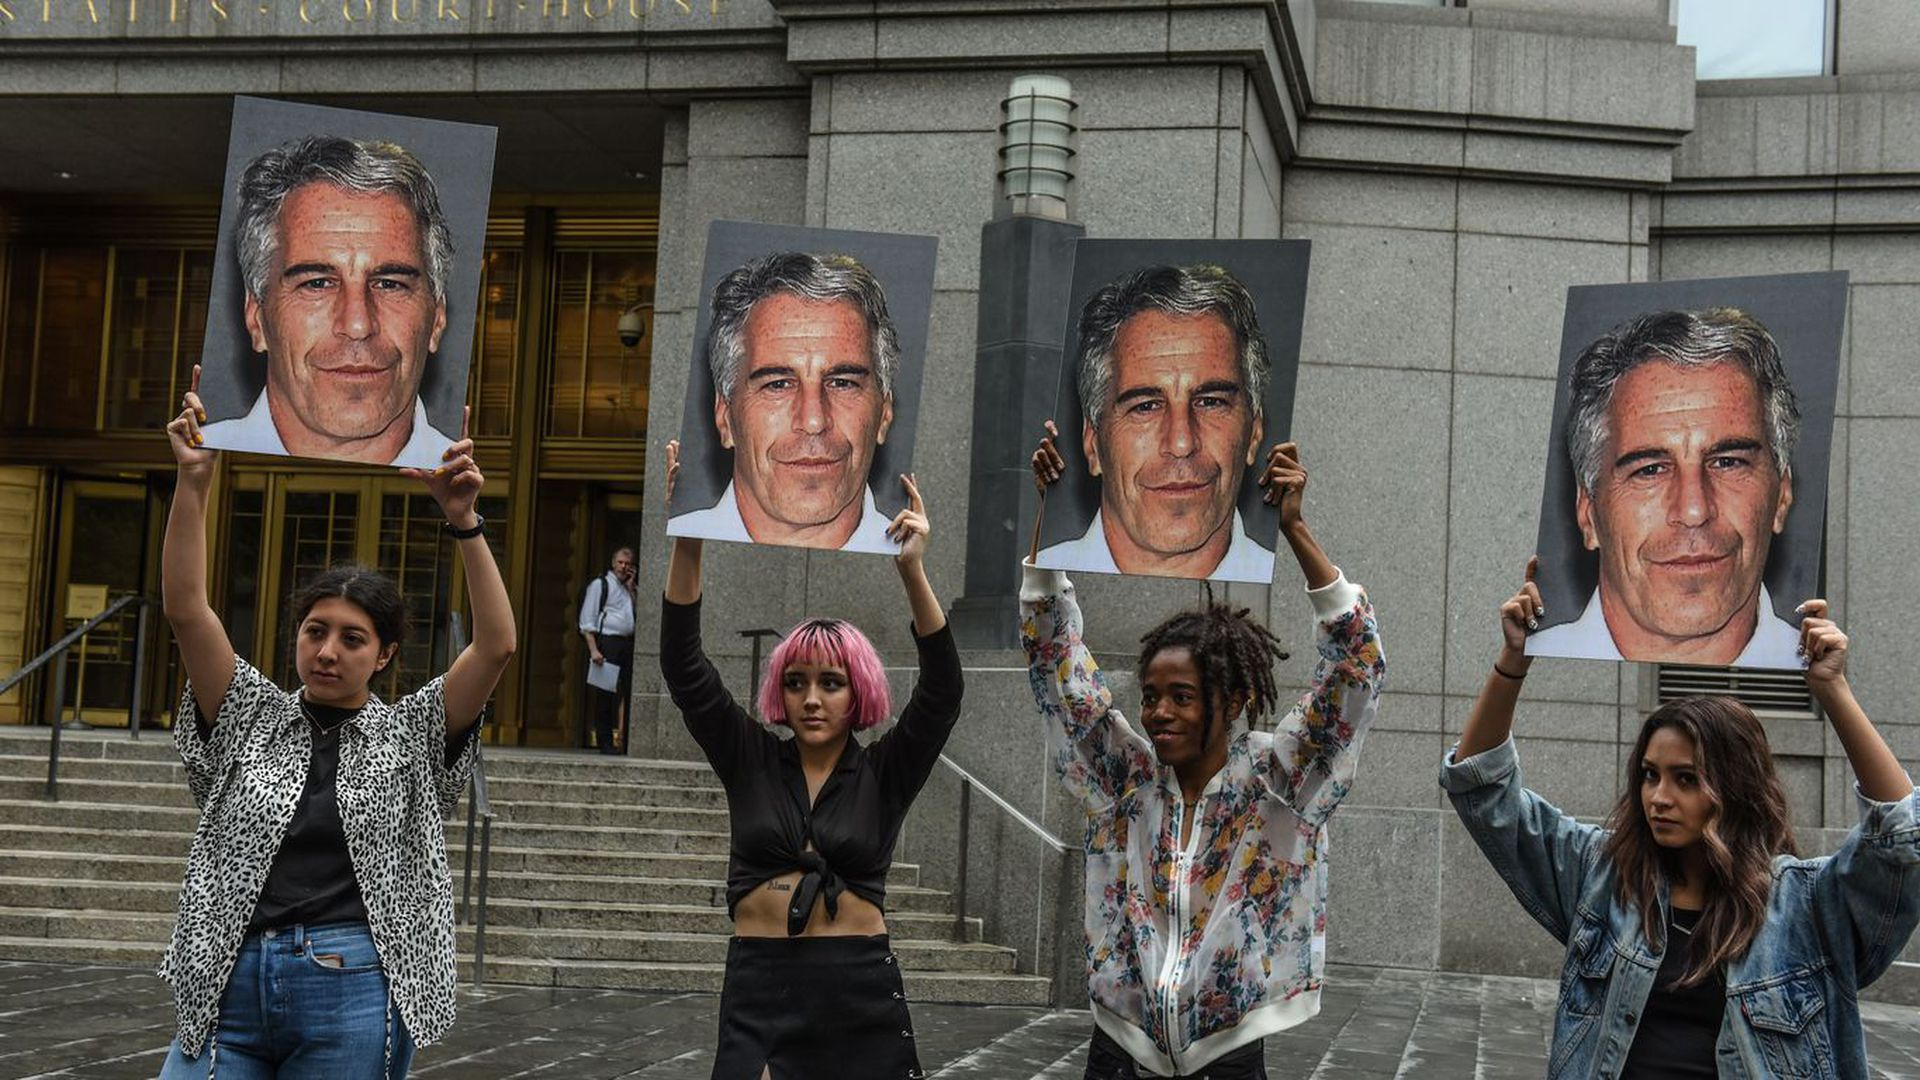 Protesters hold placards of convicted sex offender Jeffrey Epstein.